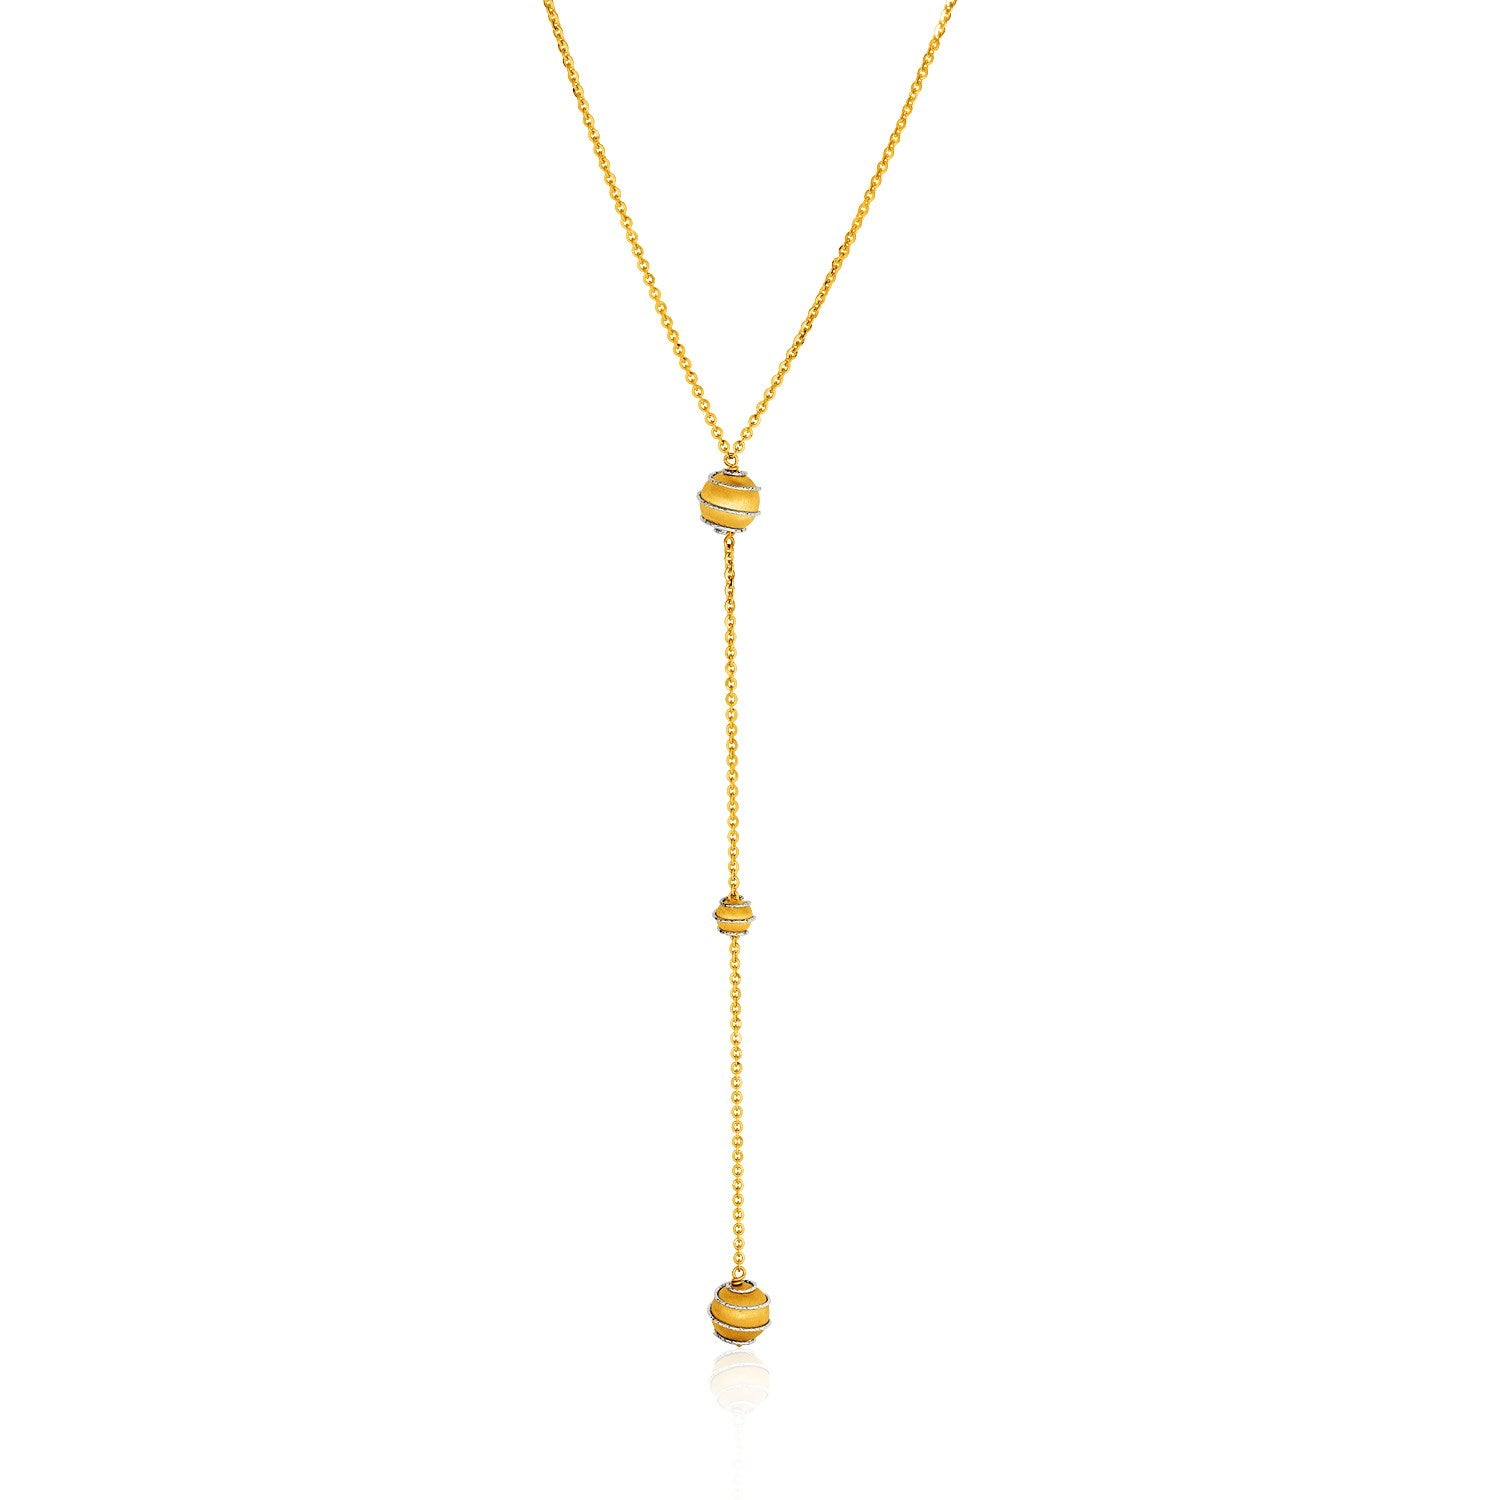 14K Two-Tone Yellow and White Chain and Ball Lariat Necklace